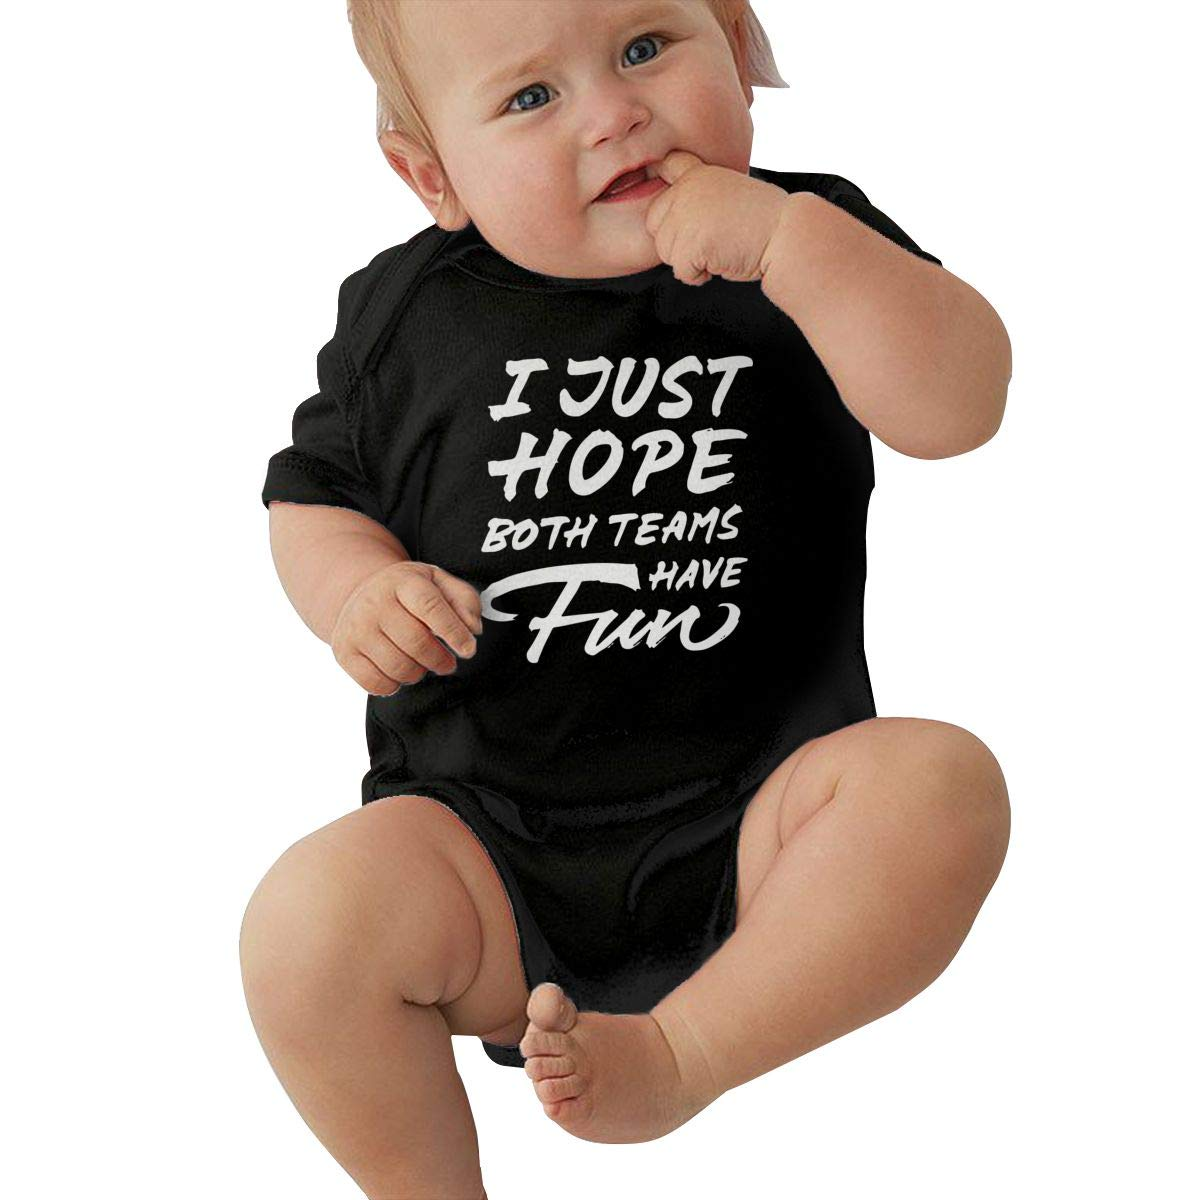 Mri-le2 Newborn Kids Short Sleeve Organic Bodysuit I JUST Hope Both Teams Have Fun Toddler Clothes Black